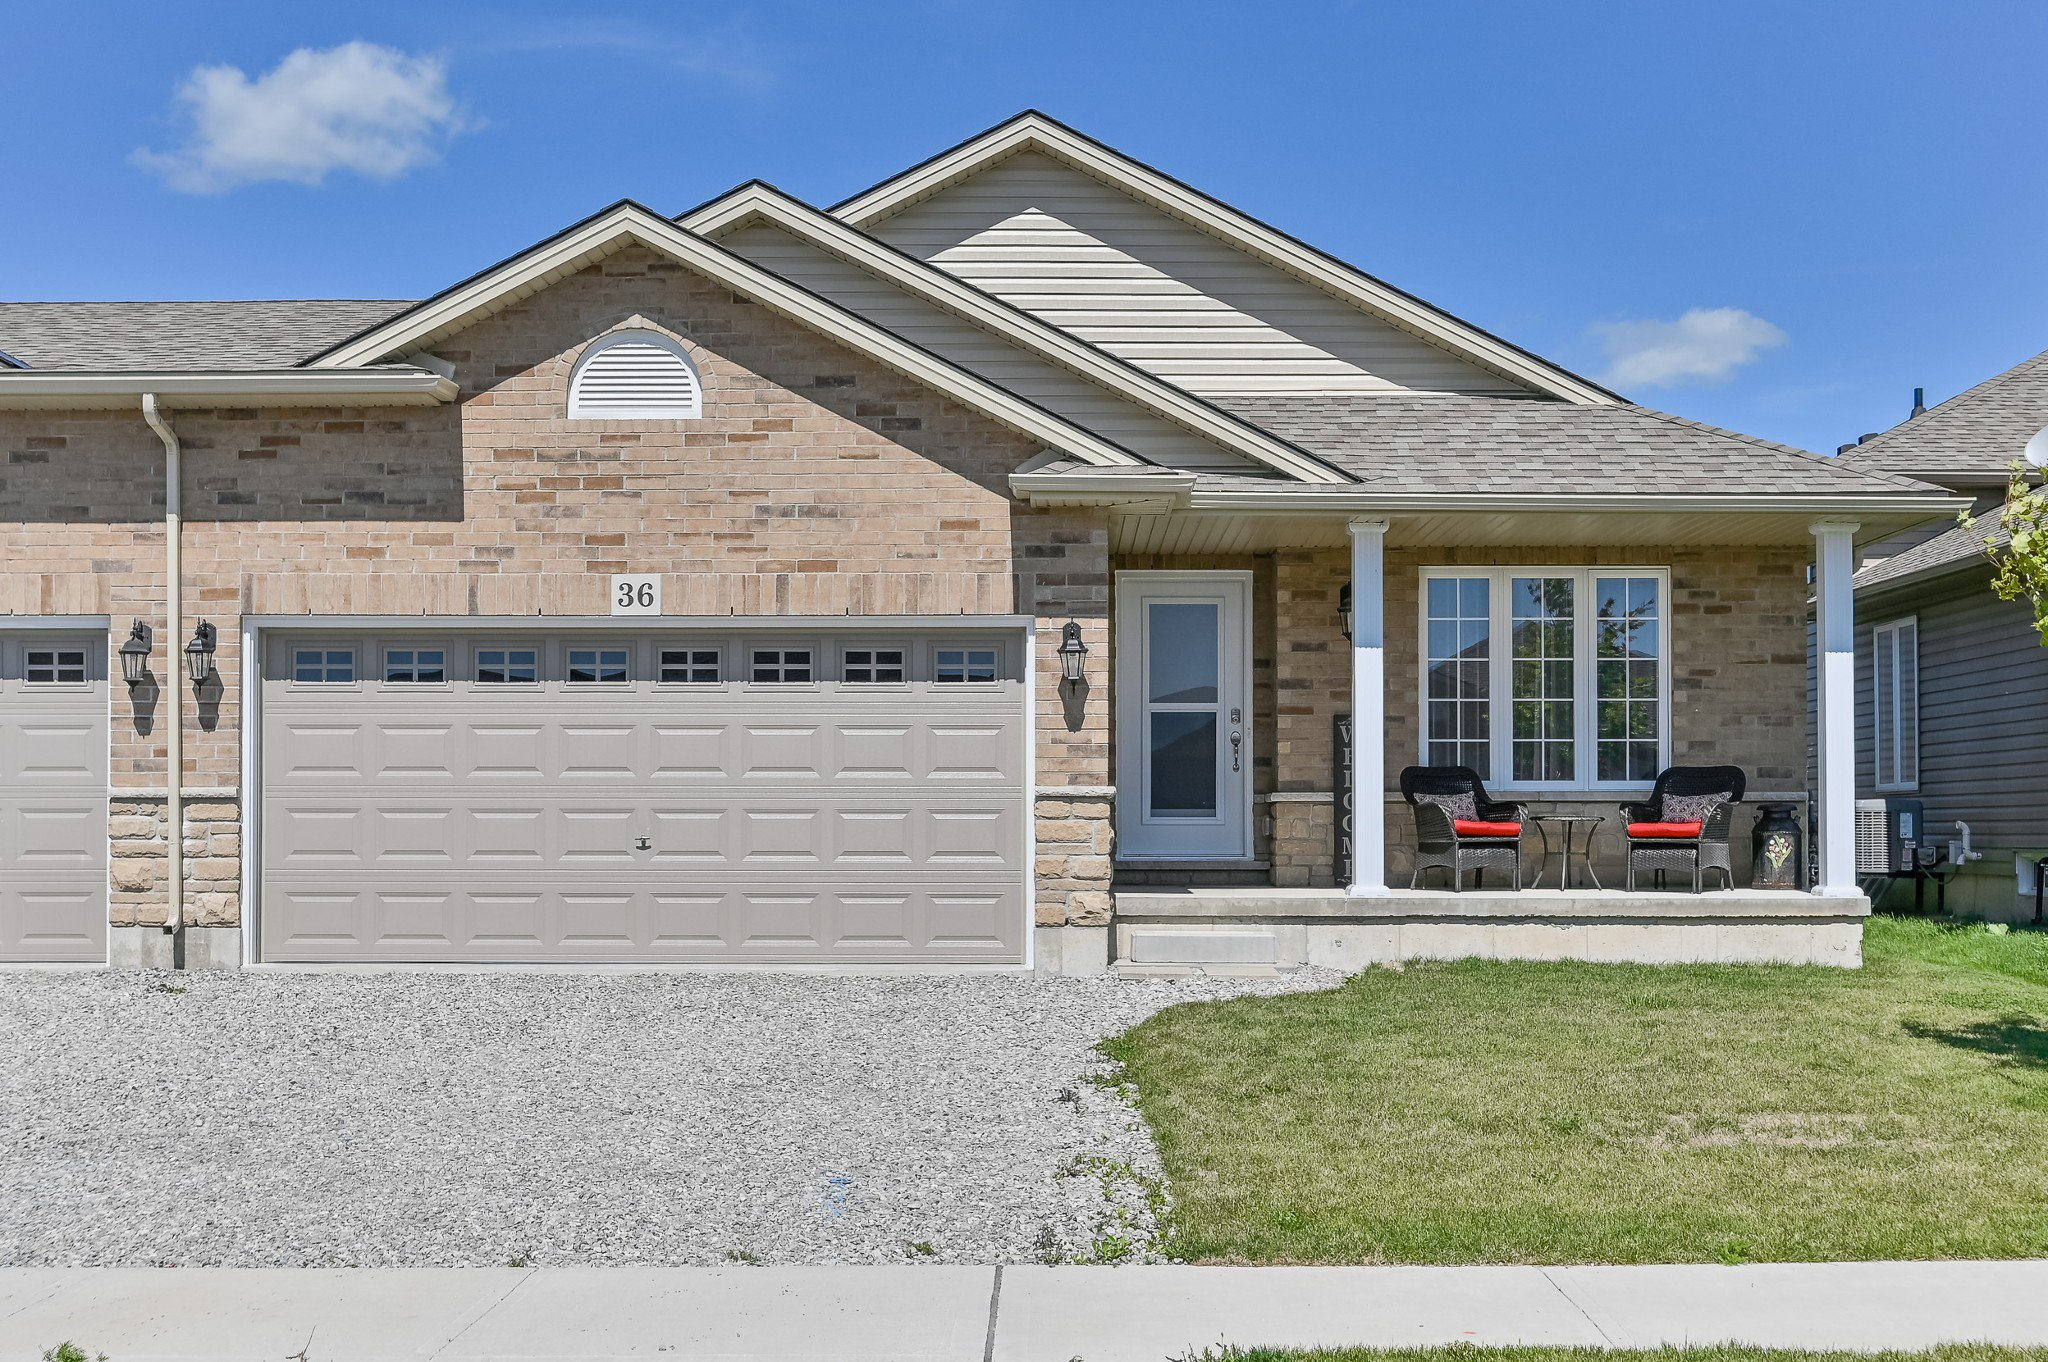 Main Photo: 36 East Helen Drive in Hagersville: House for sale : MLS®# H4062188